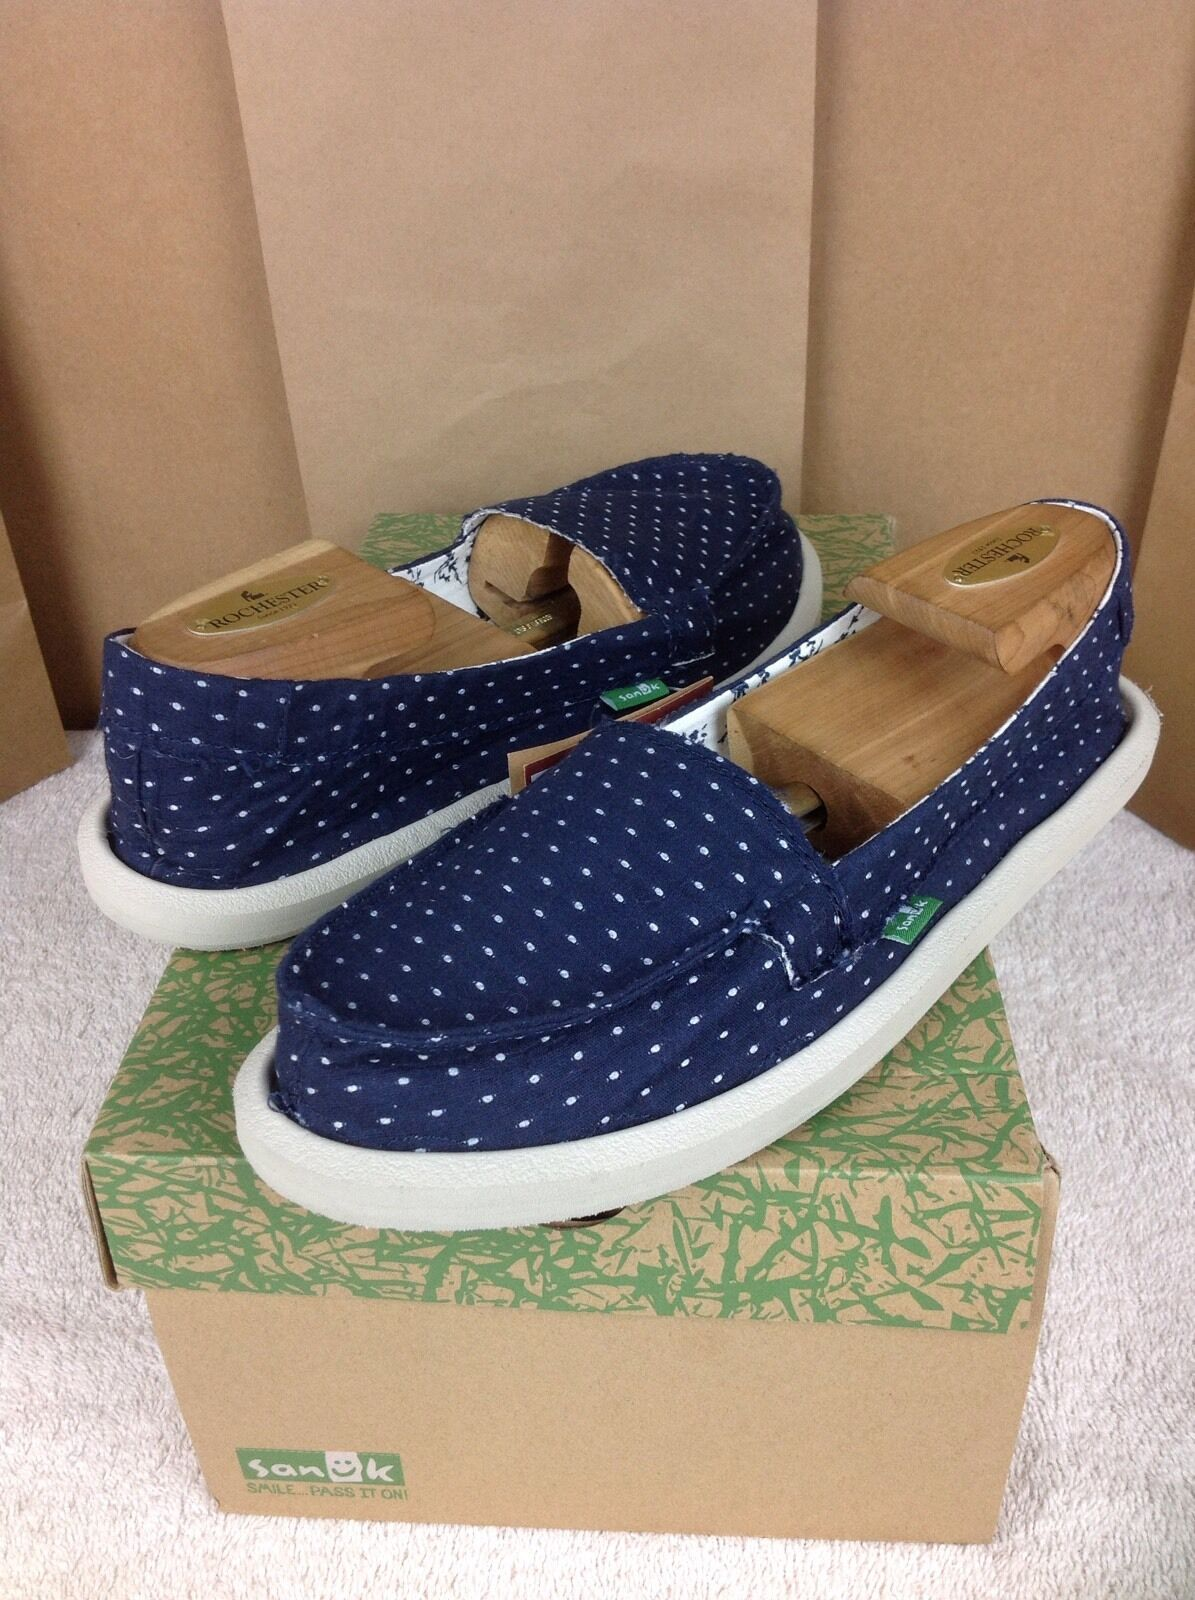 SANUK SHORTY DOTS NAVY COLOR SIDEWALK SURFER SHOES SIZE 5 US